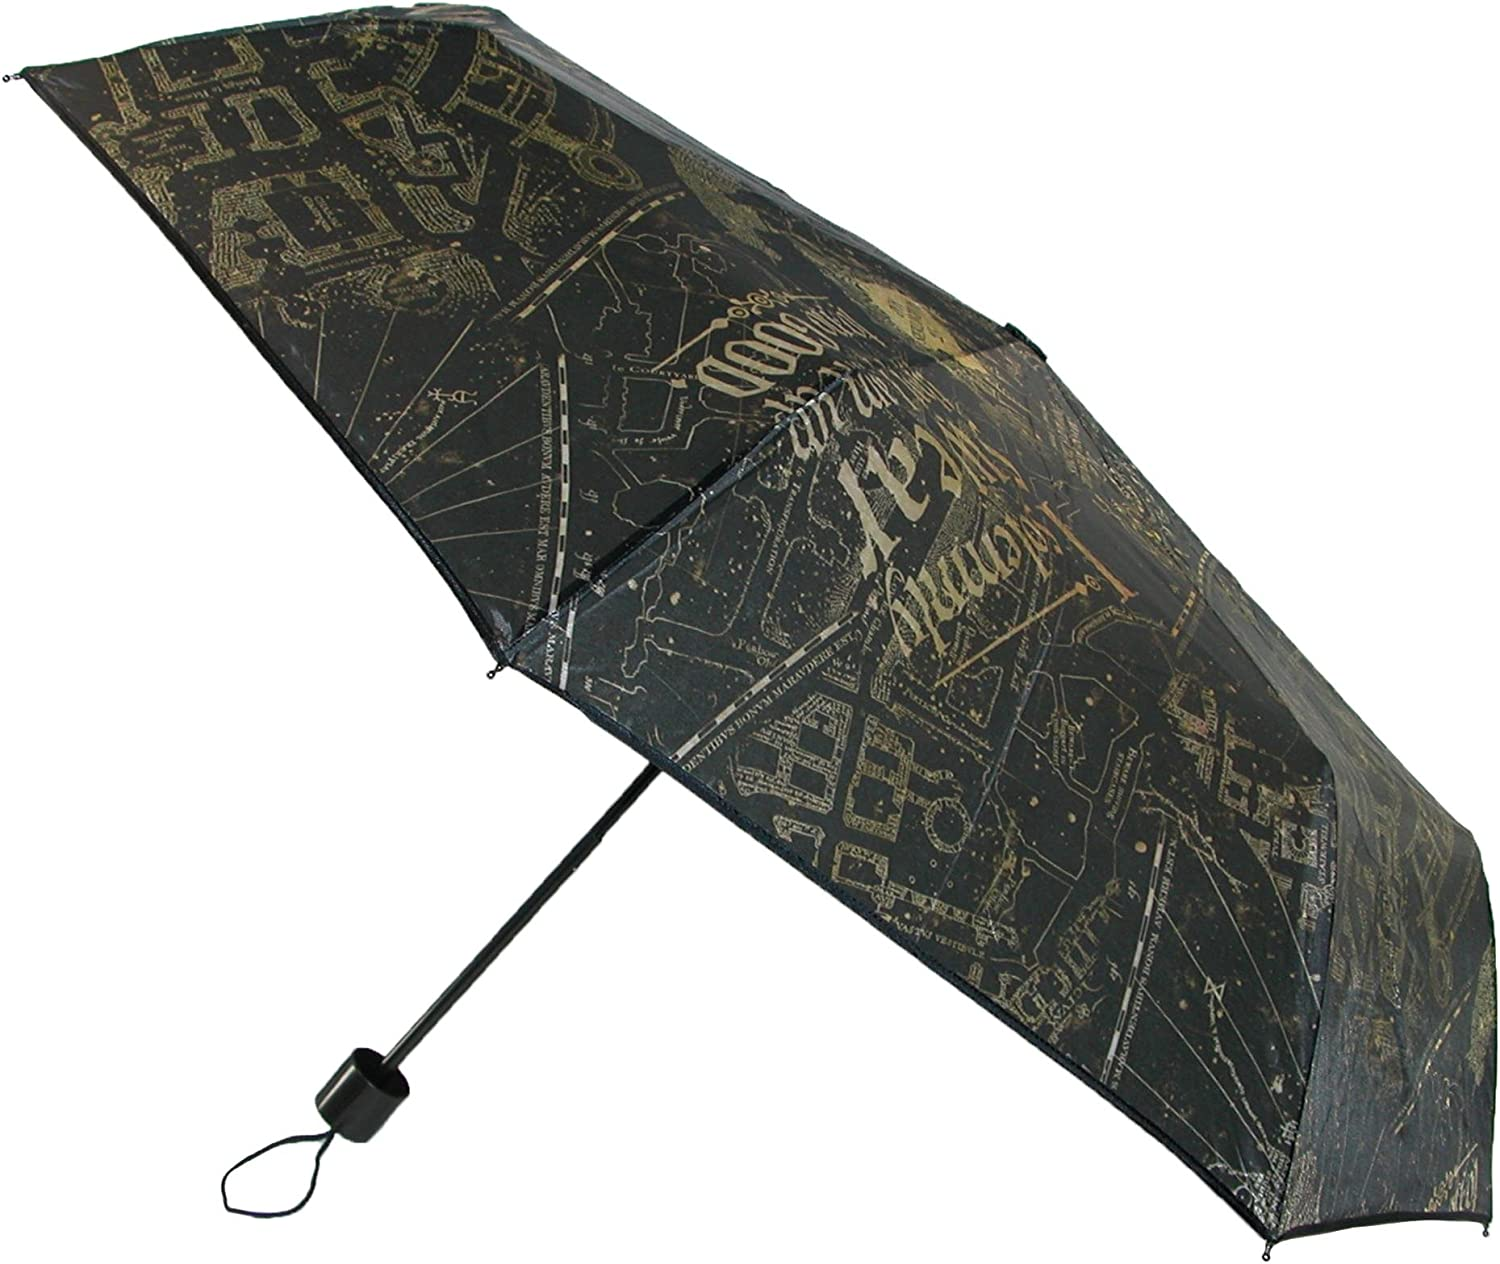 Ouverture Automatique Cinereplicas Licence Officielle Parapluie Harry Potter Umbrella Carte du Maraudeur